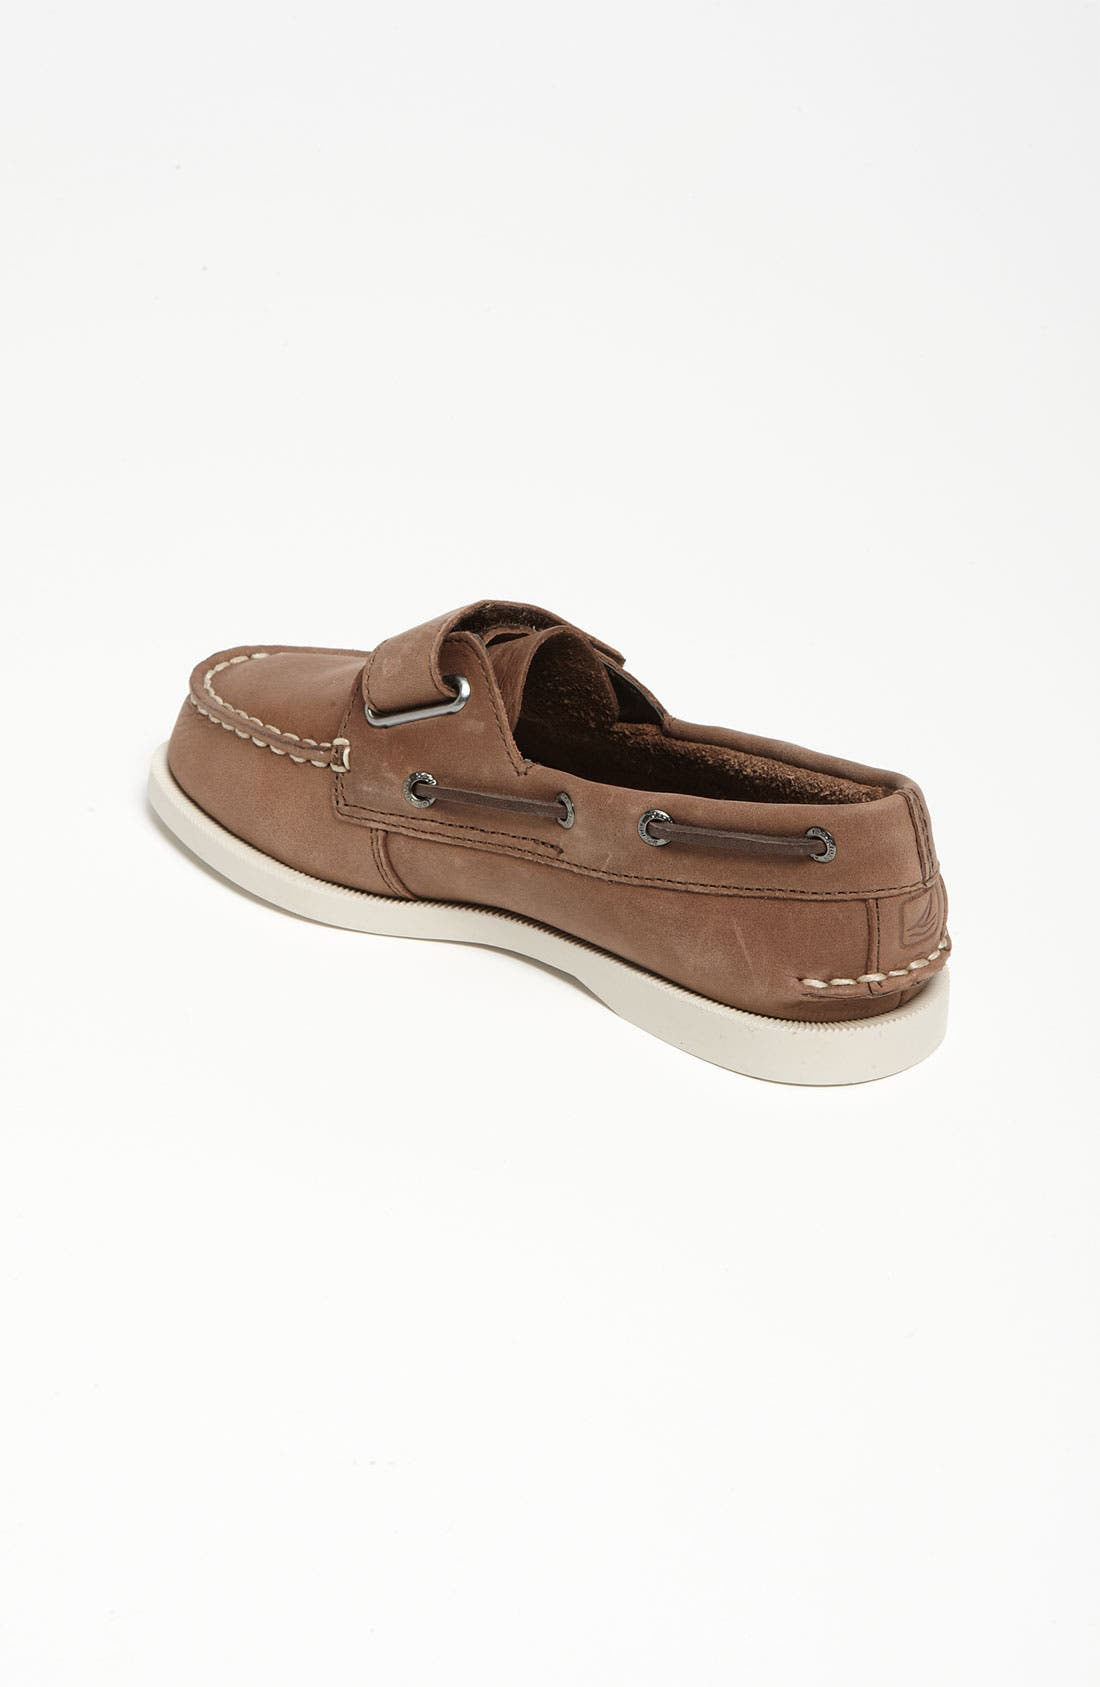 Alternate Image 2  - Sperry Top-Sider® Kids 'Authentic Original' Boat Shoe (Walker & Toddler)